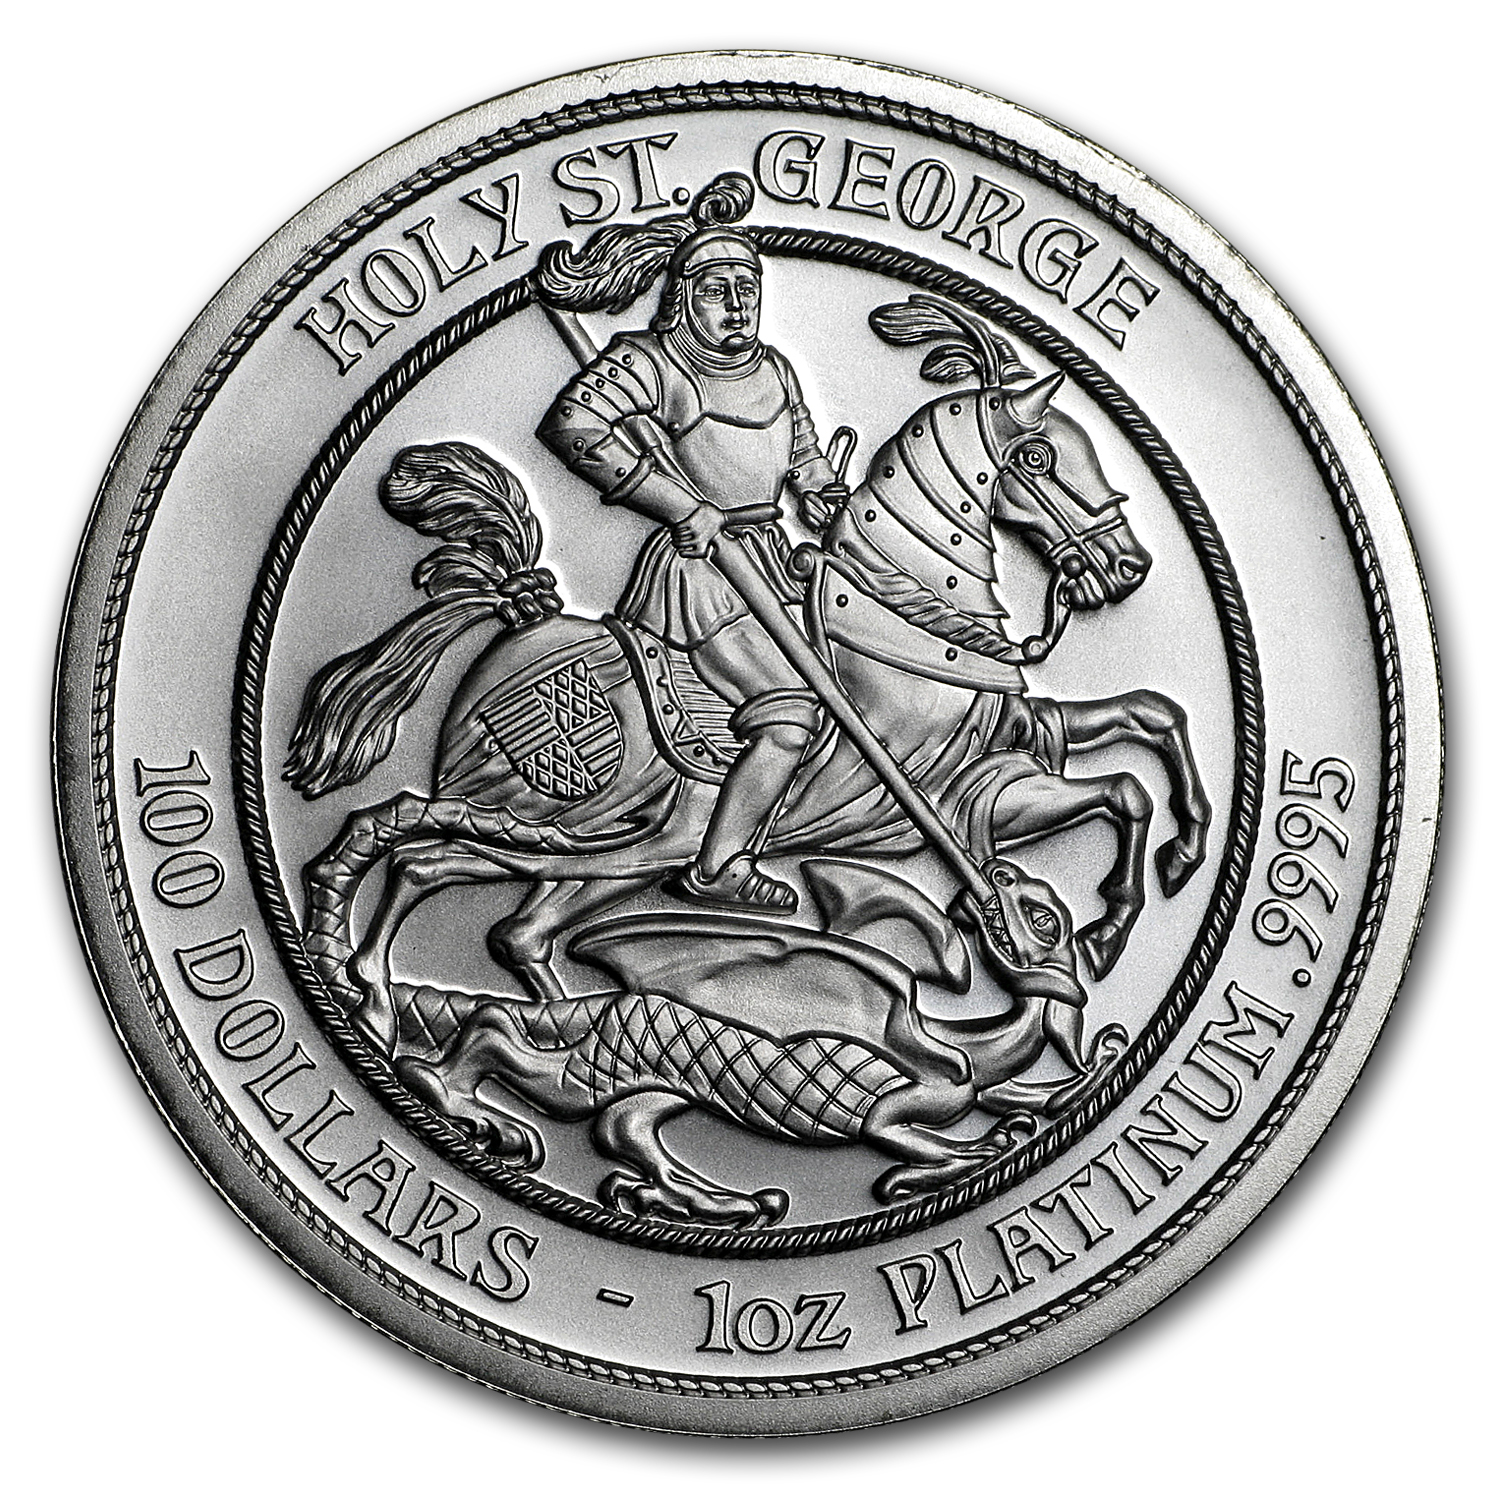 2015 Cook Islands 1 oz Platinum Holy St. George